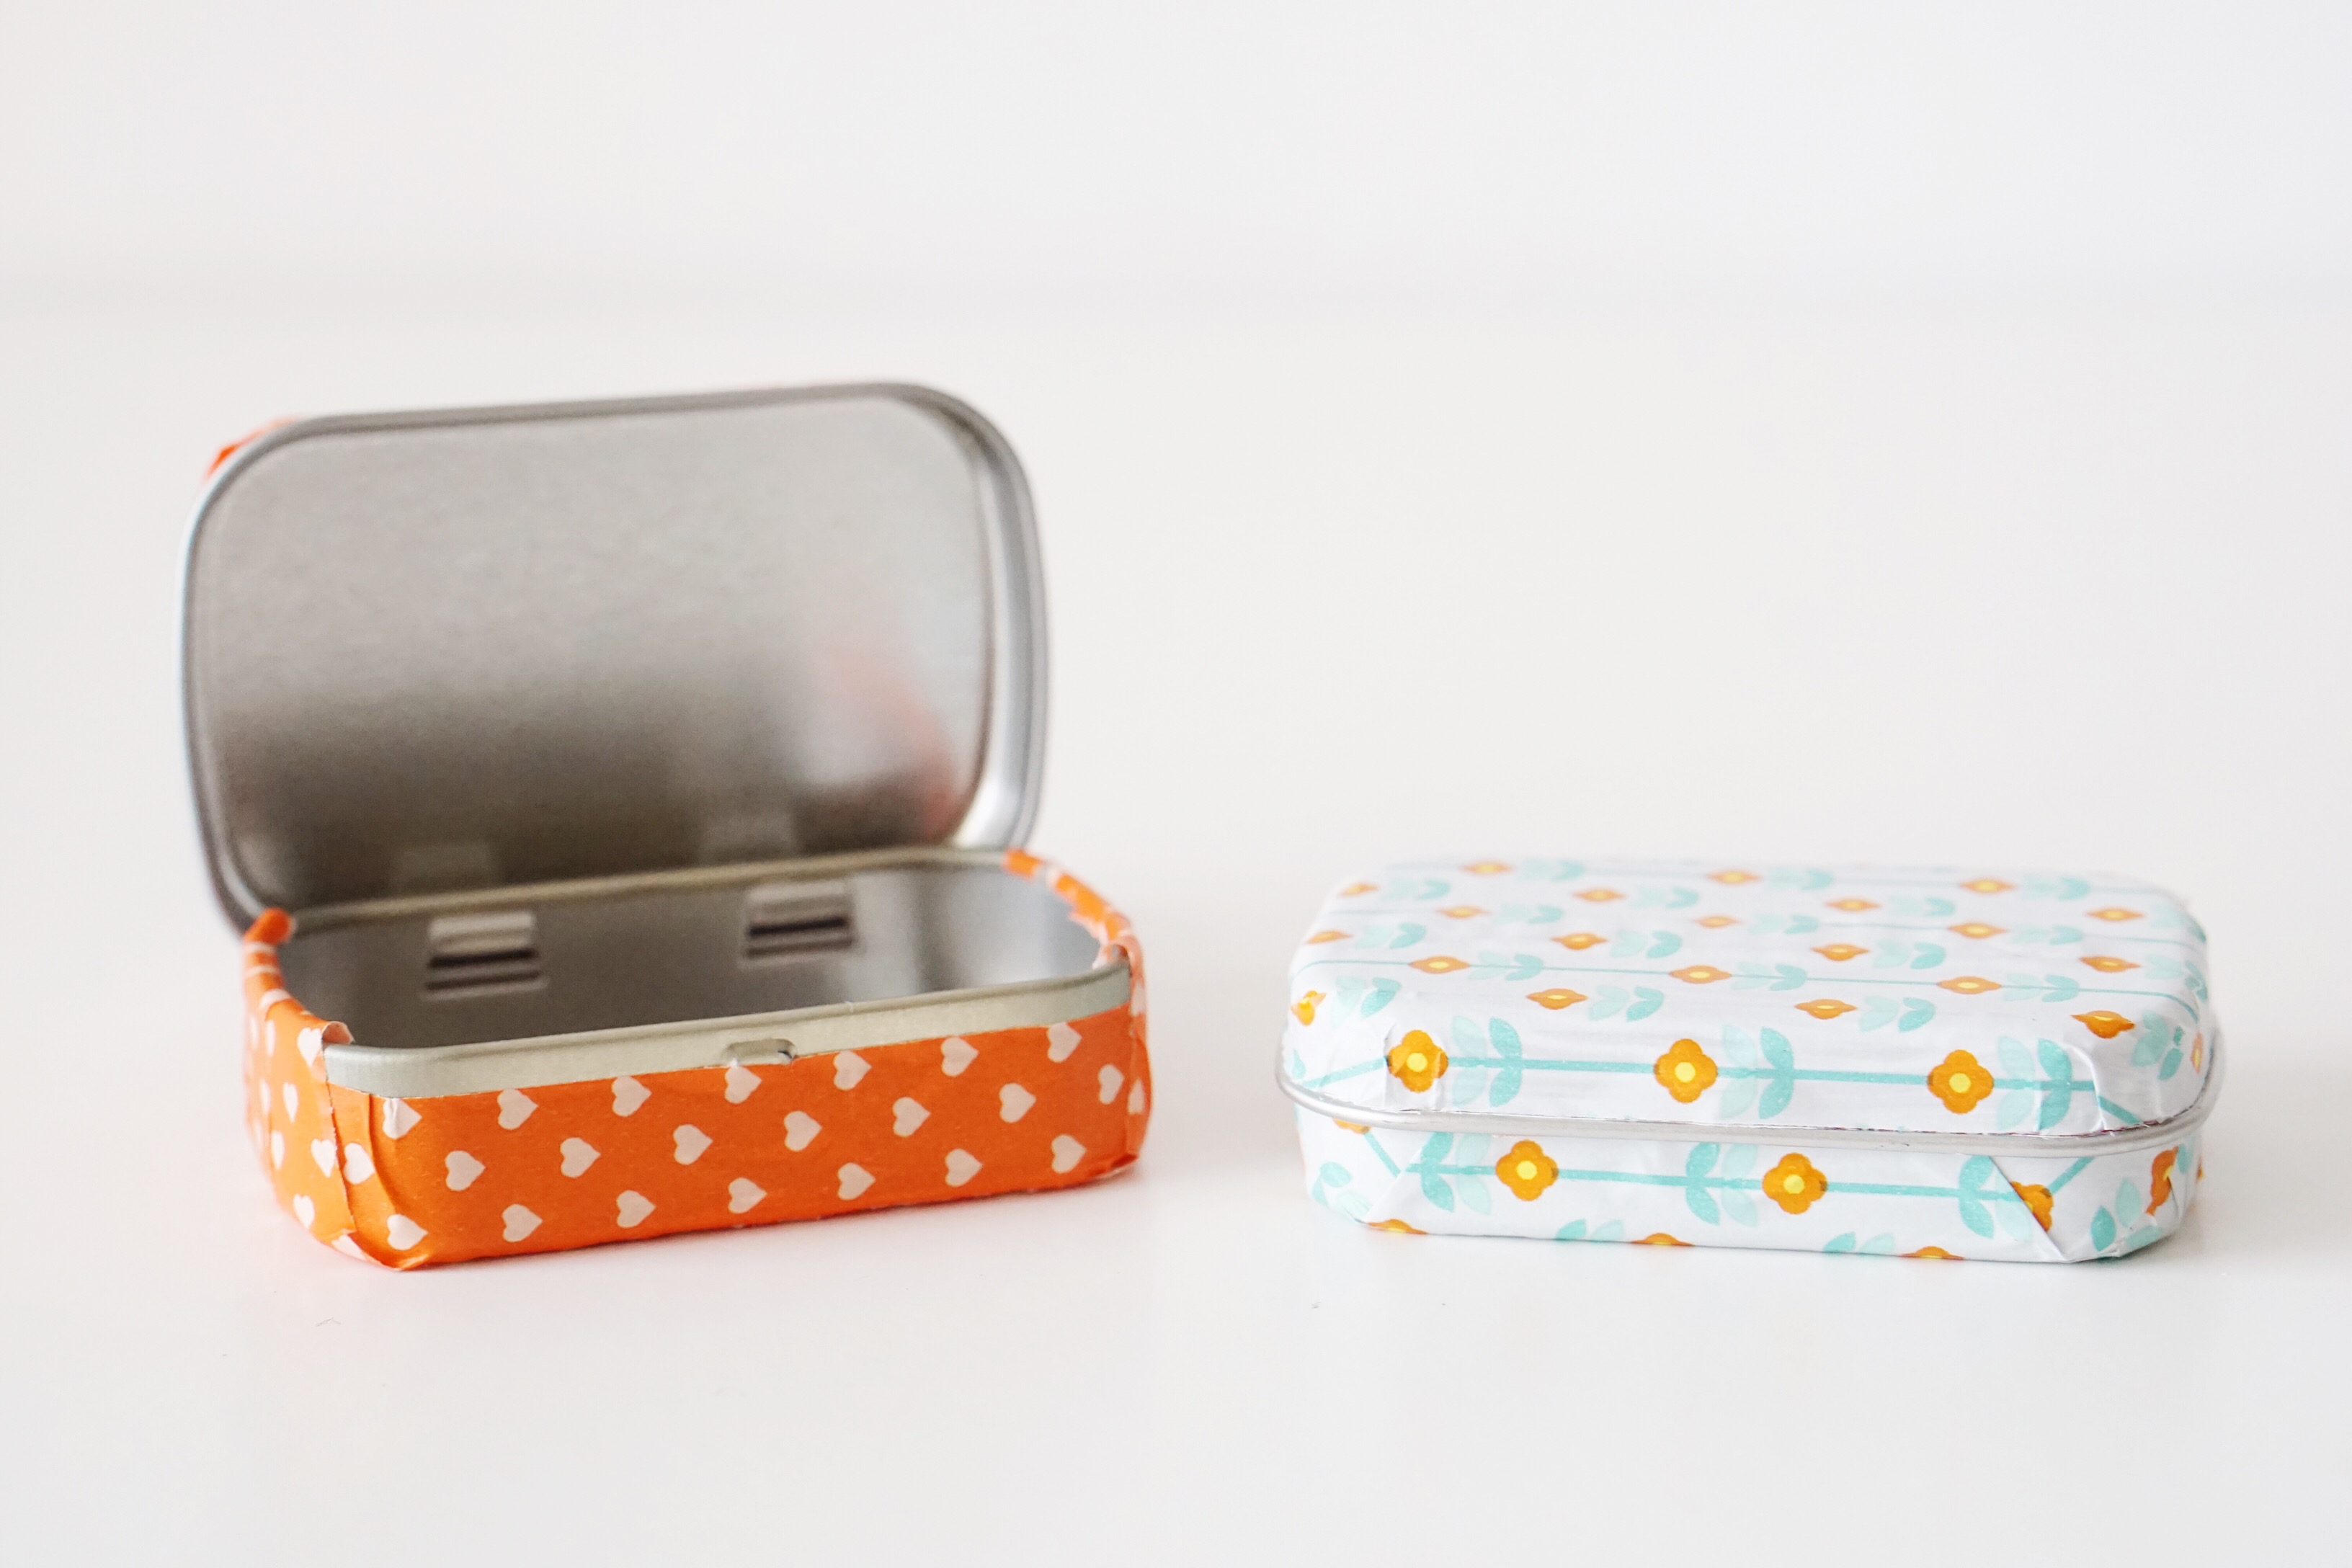 Upcycled Altoids tin with washi tape